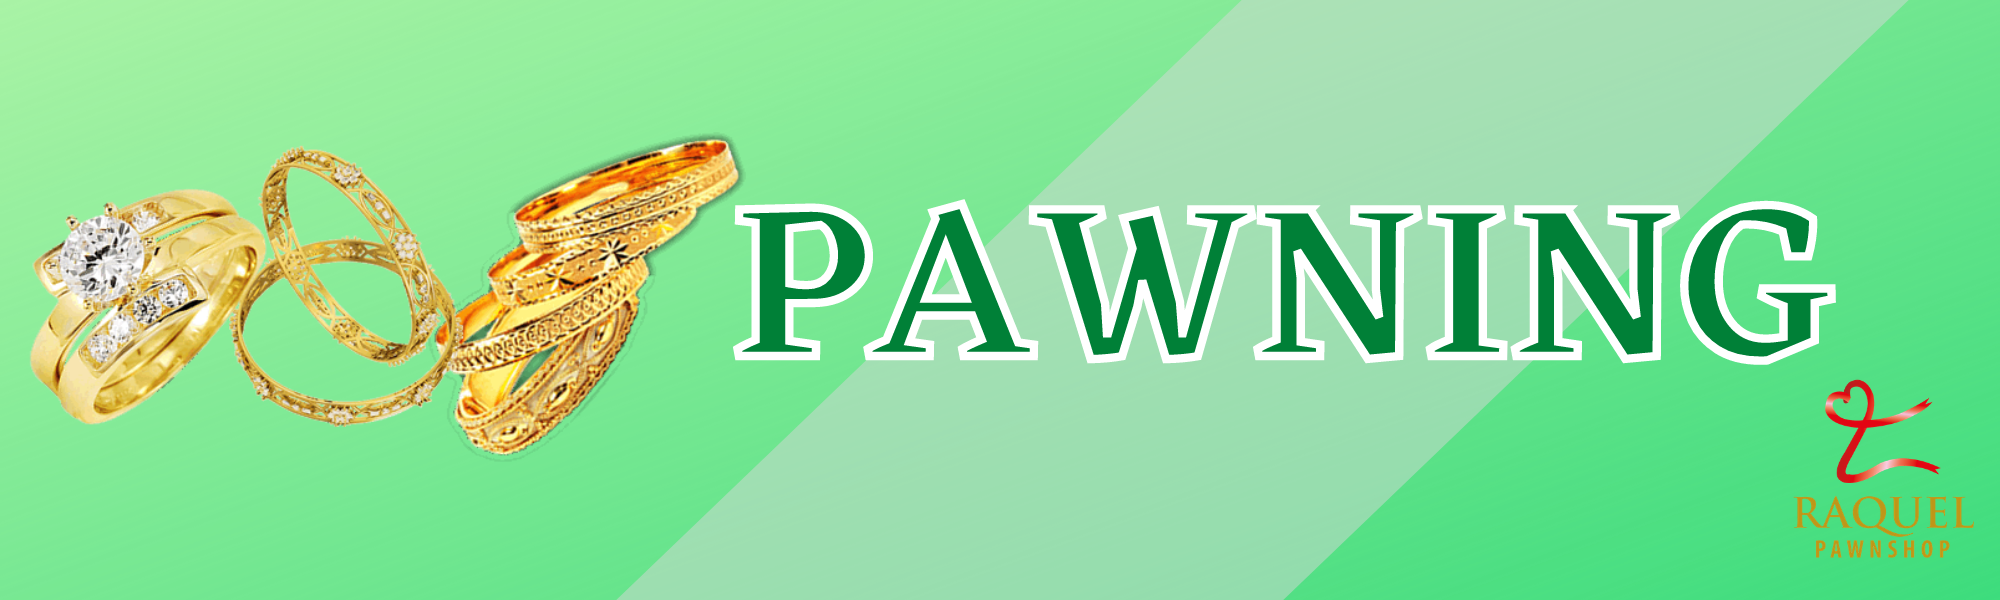 pawning banner